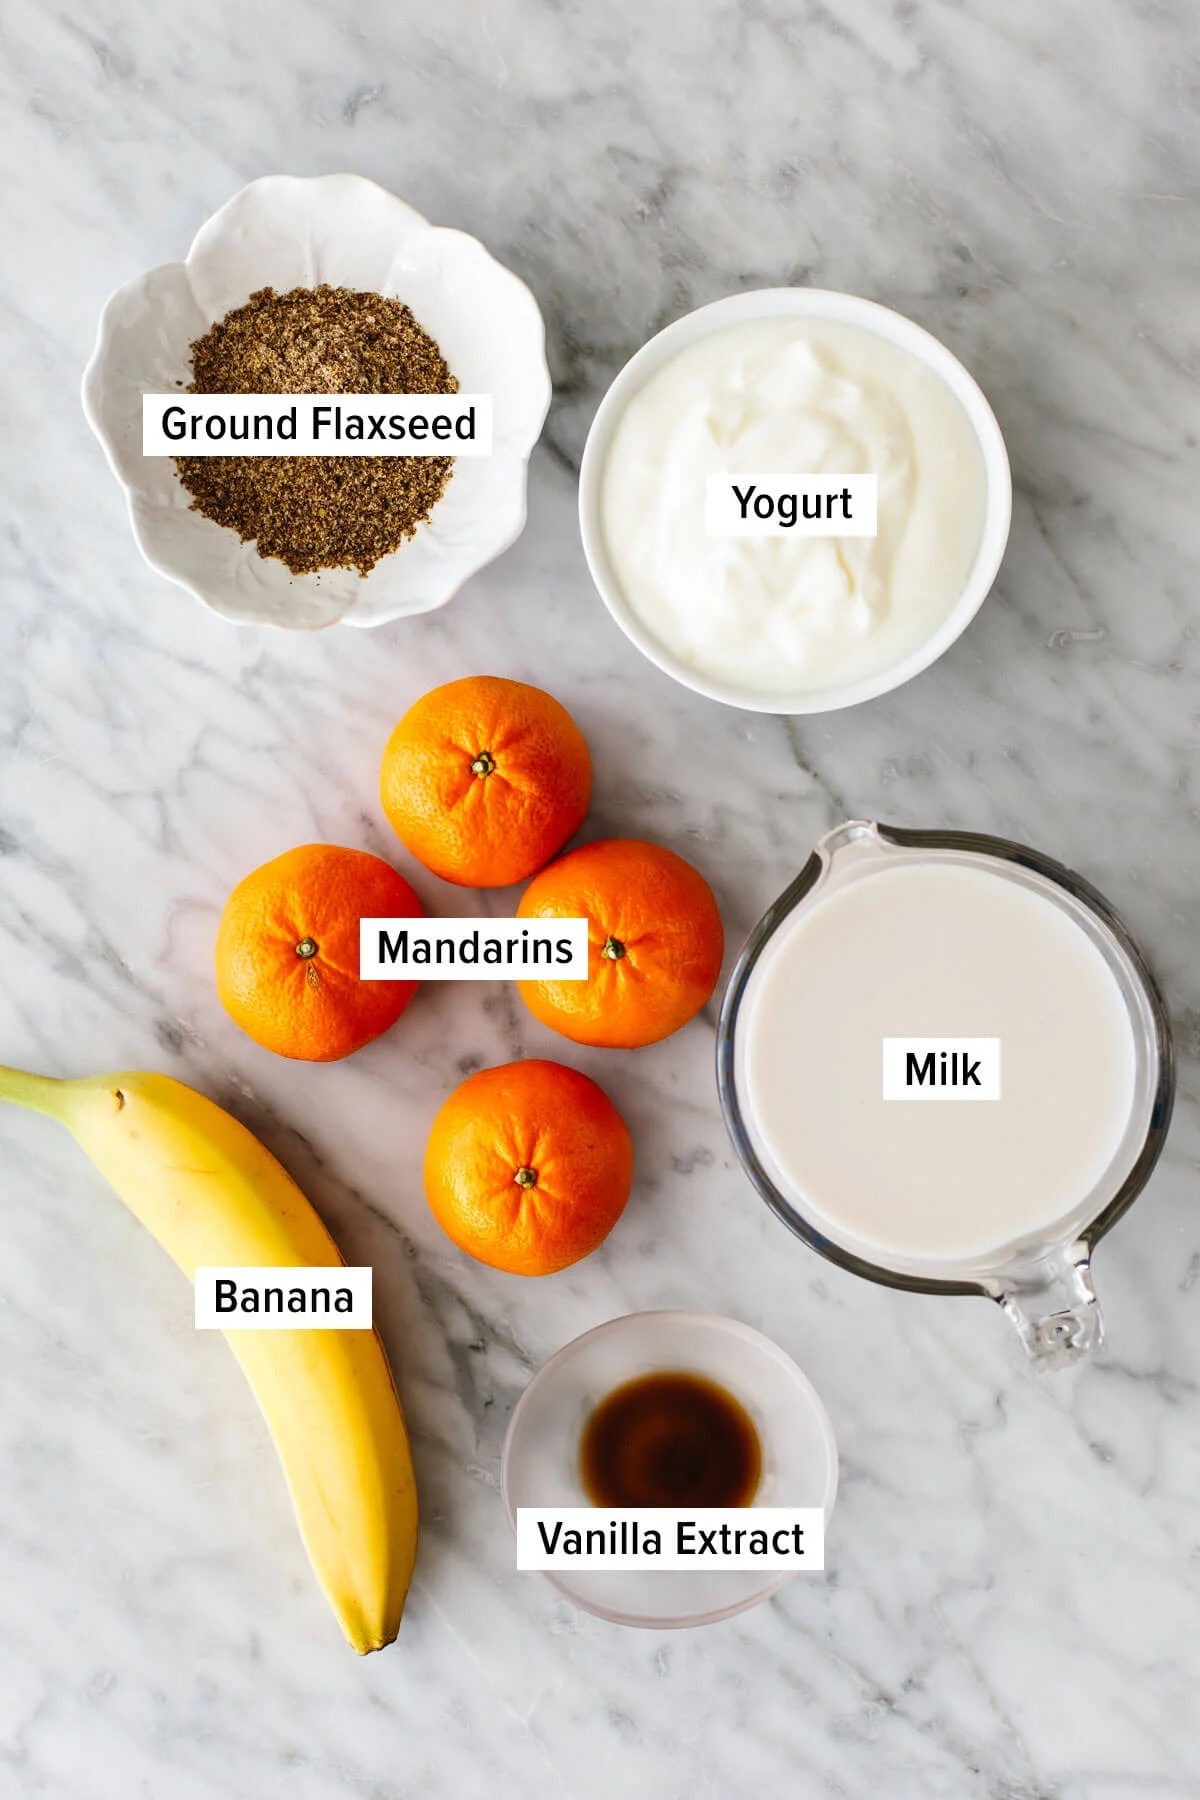 Ingredients for a mandarin breakfast smoothie on a table.